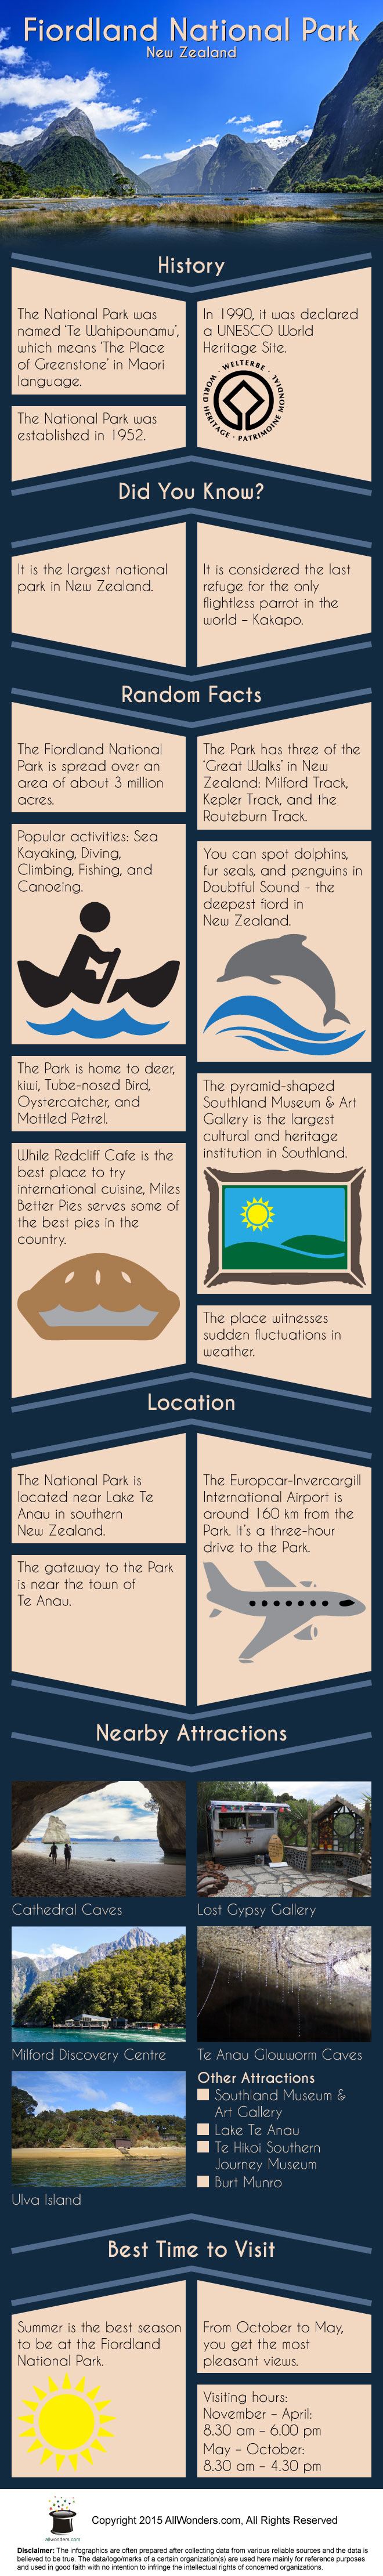 Fiordland National Park Infographic